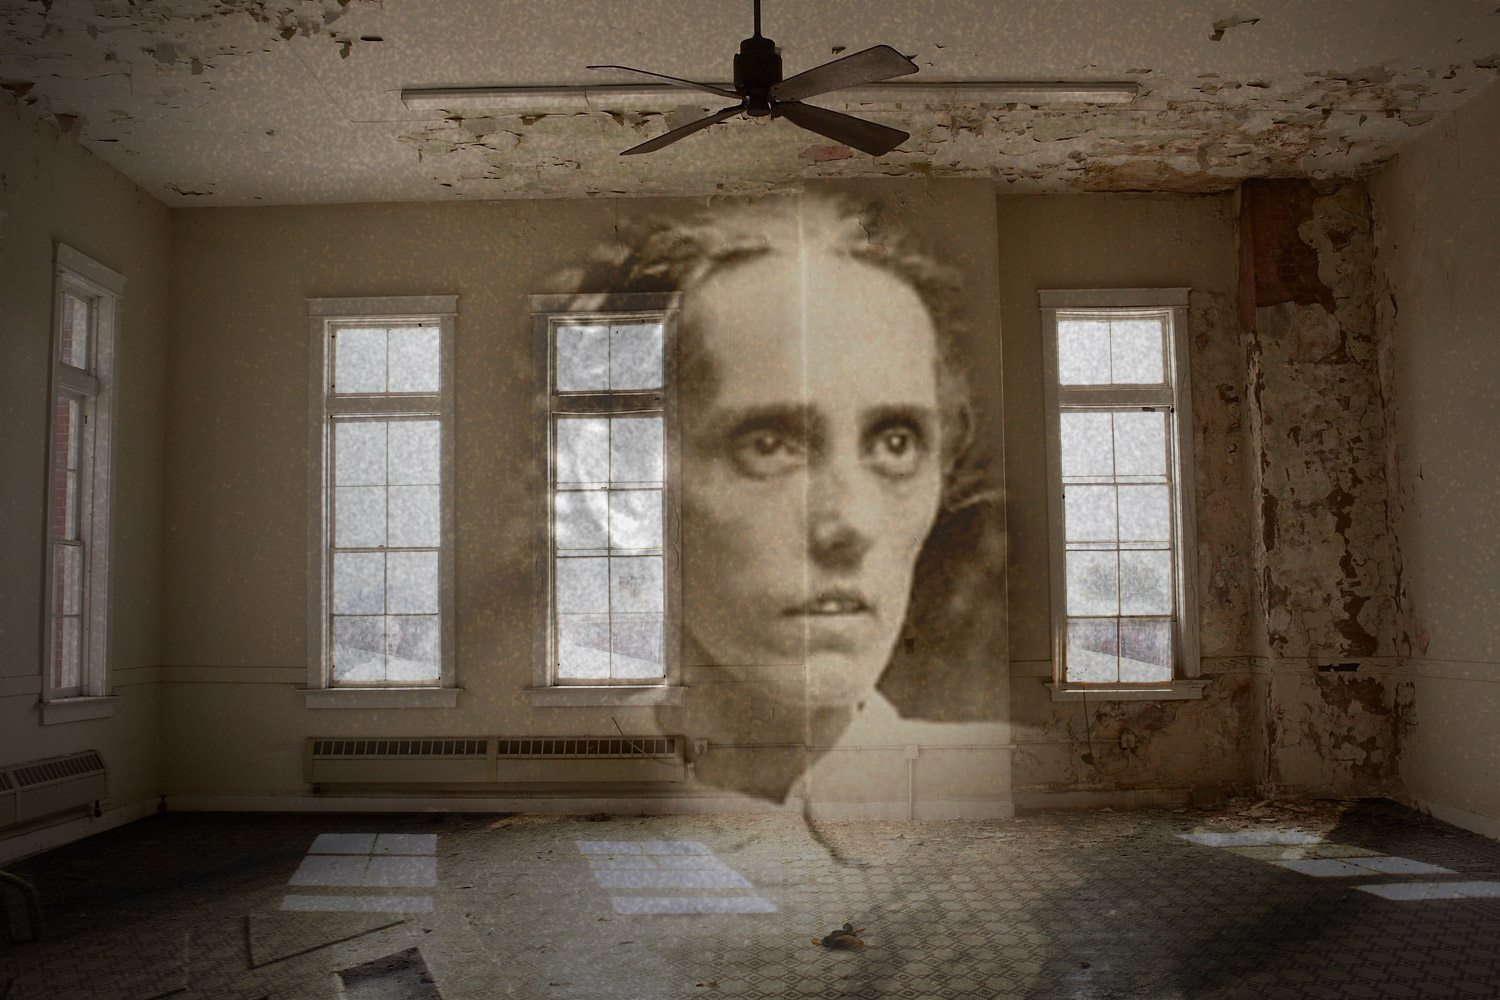 The Tragic Tale of Margaret Schilling and the Athens Lunatic Asylum